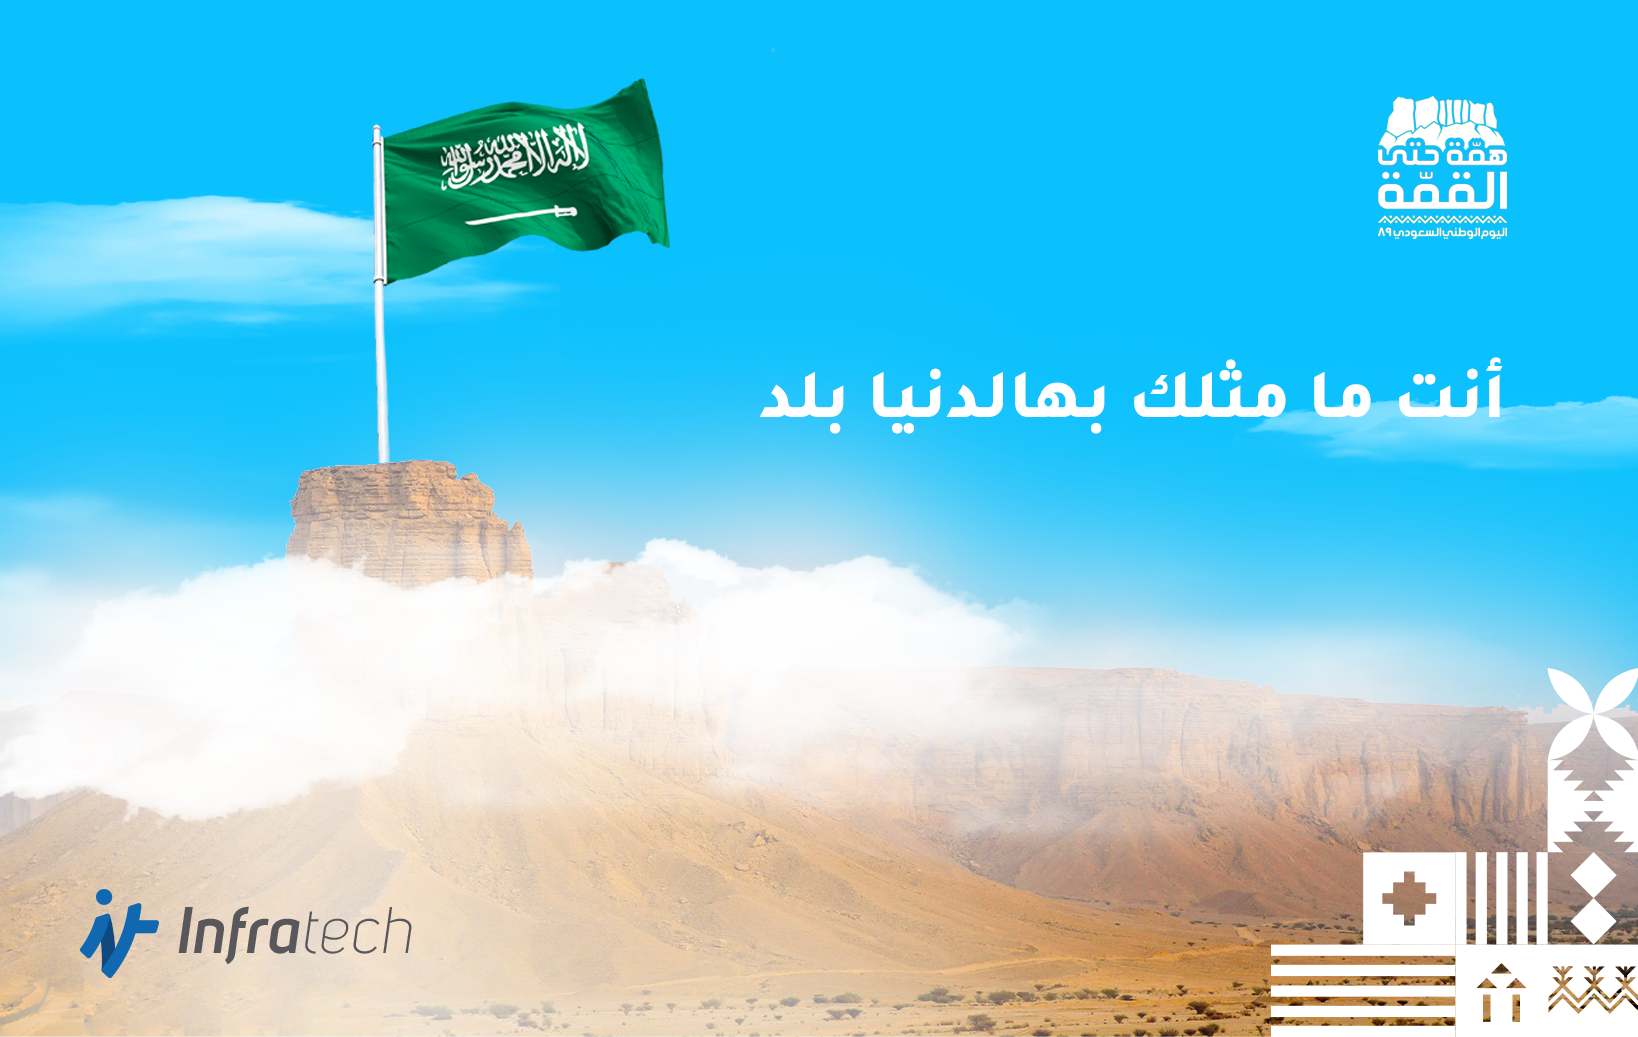 Infratech Wishes All Saudis Happy 89th National Day